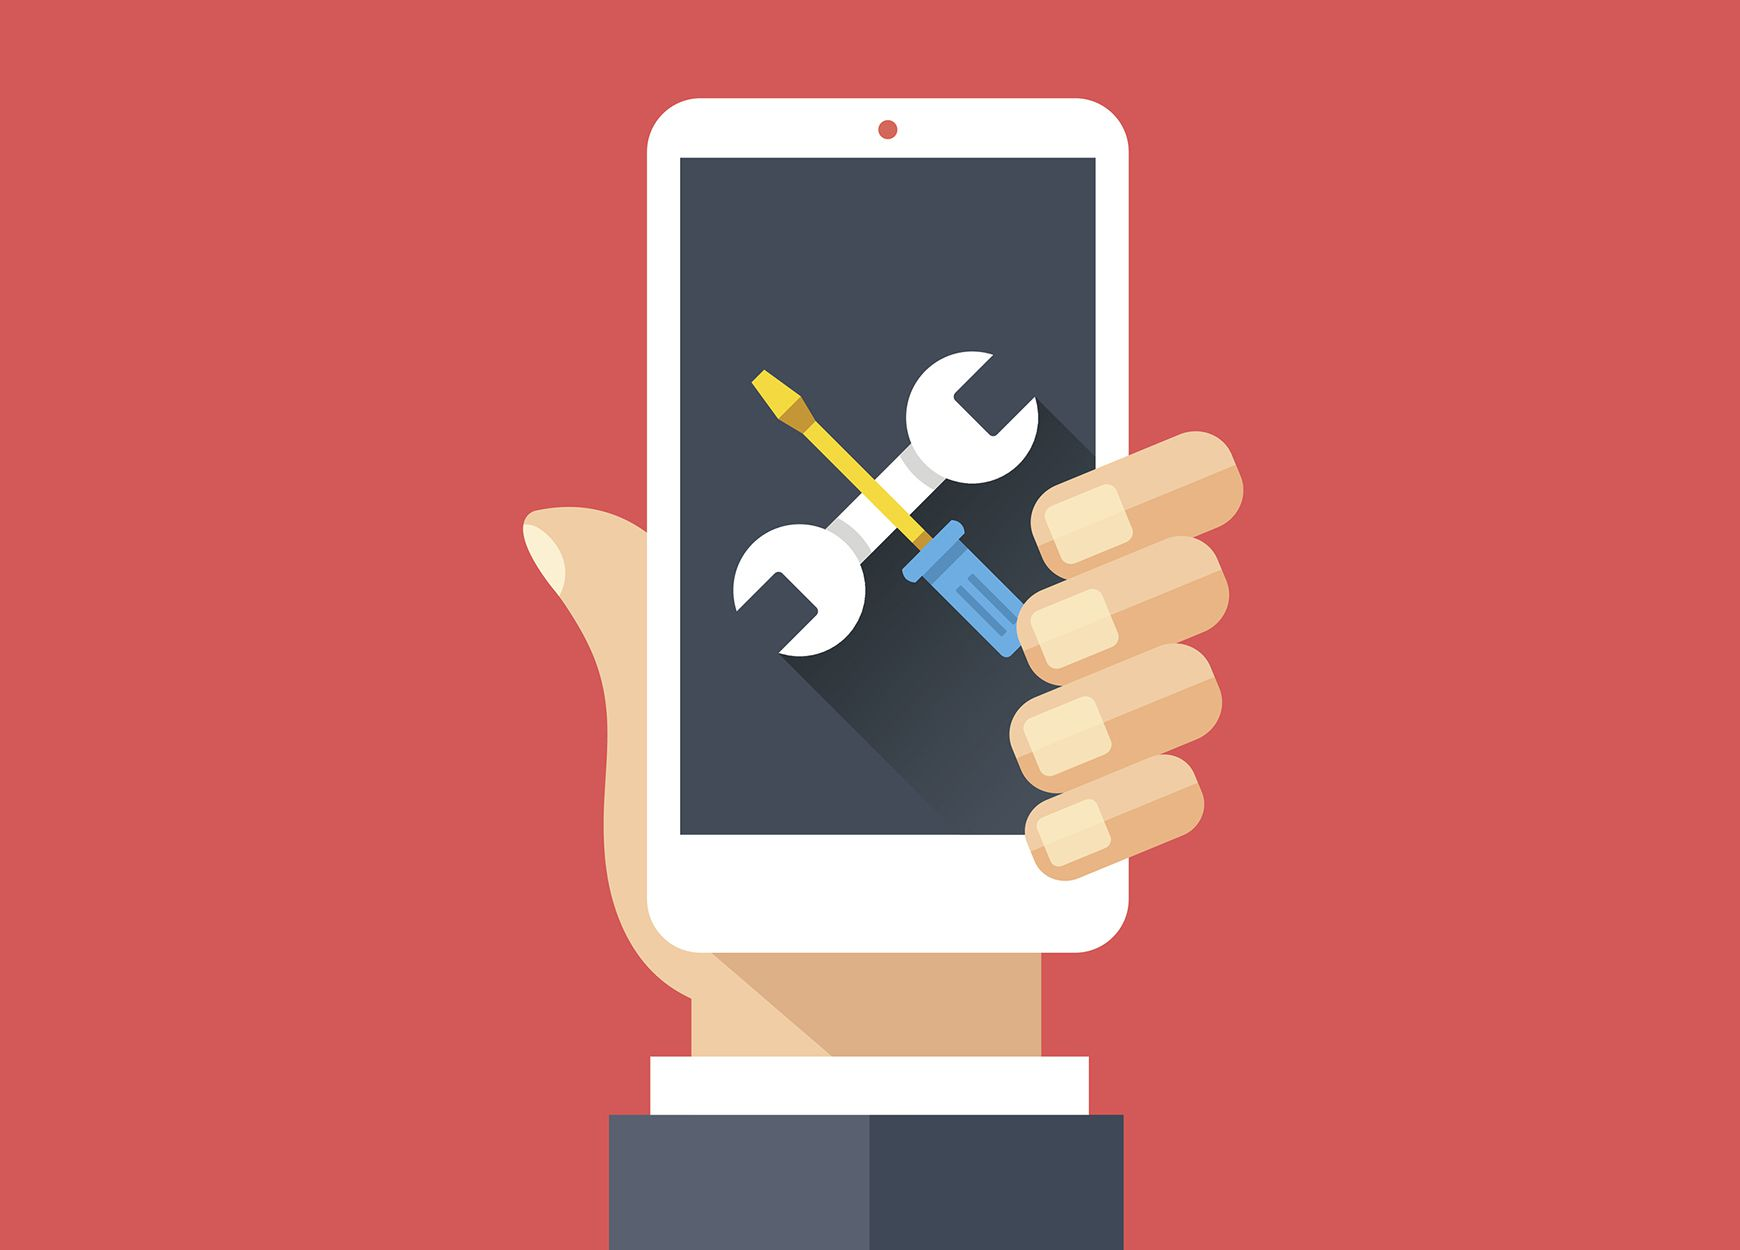 Illustration of tools on a mobile phone screen in a person's hand